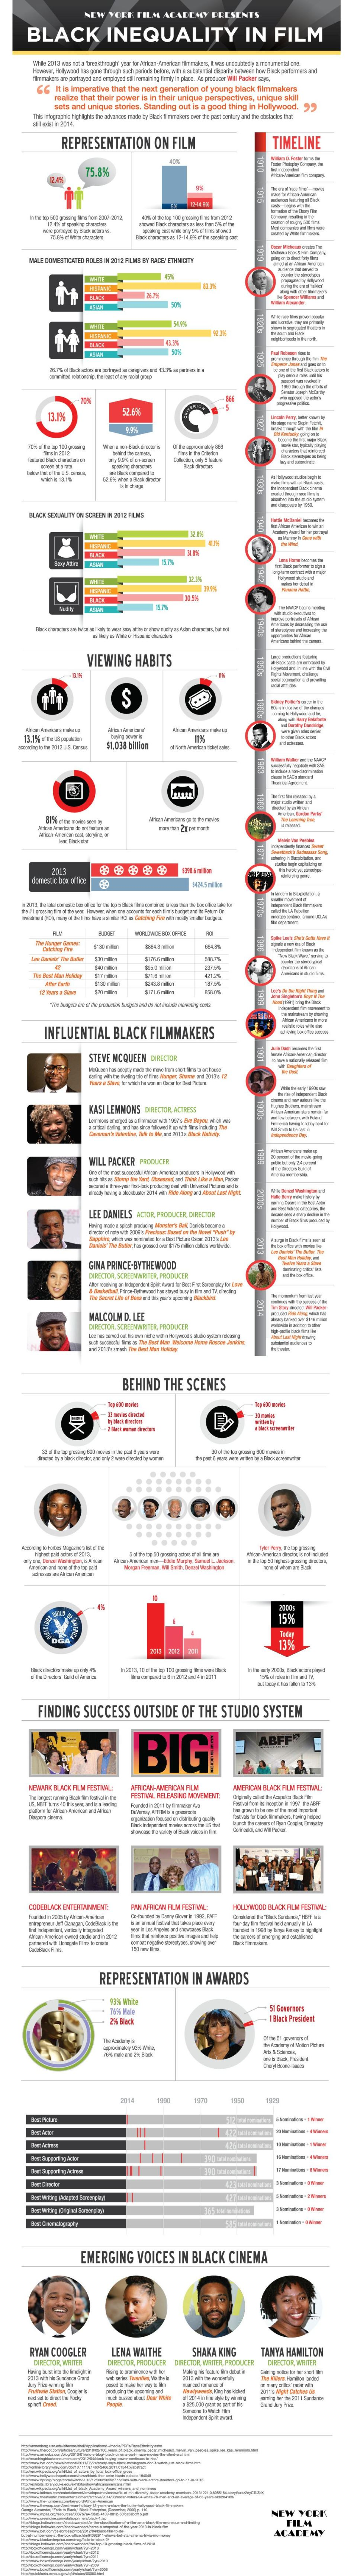 New York Film Academy takes a look at black inequality in film